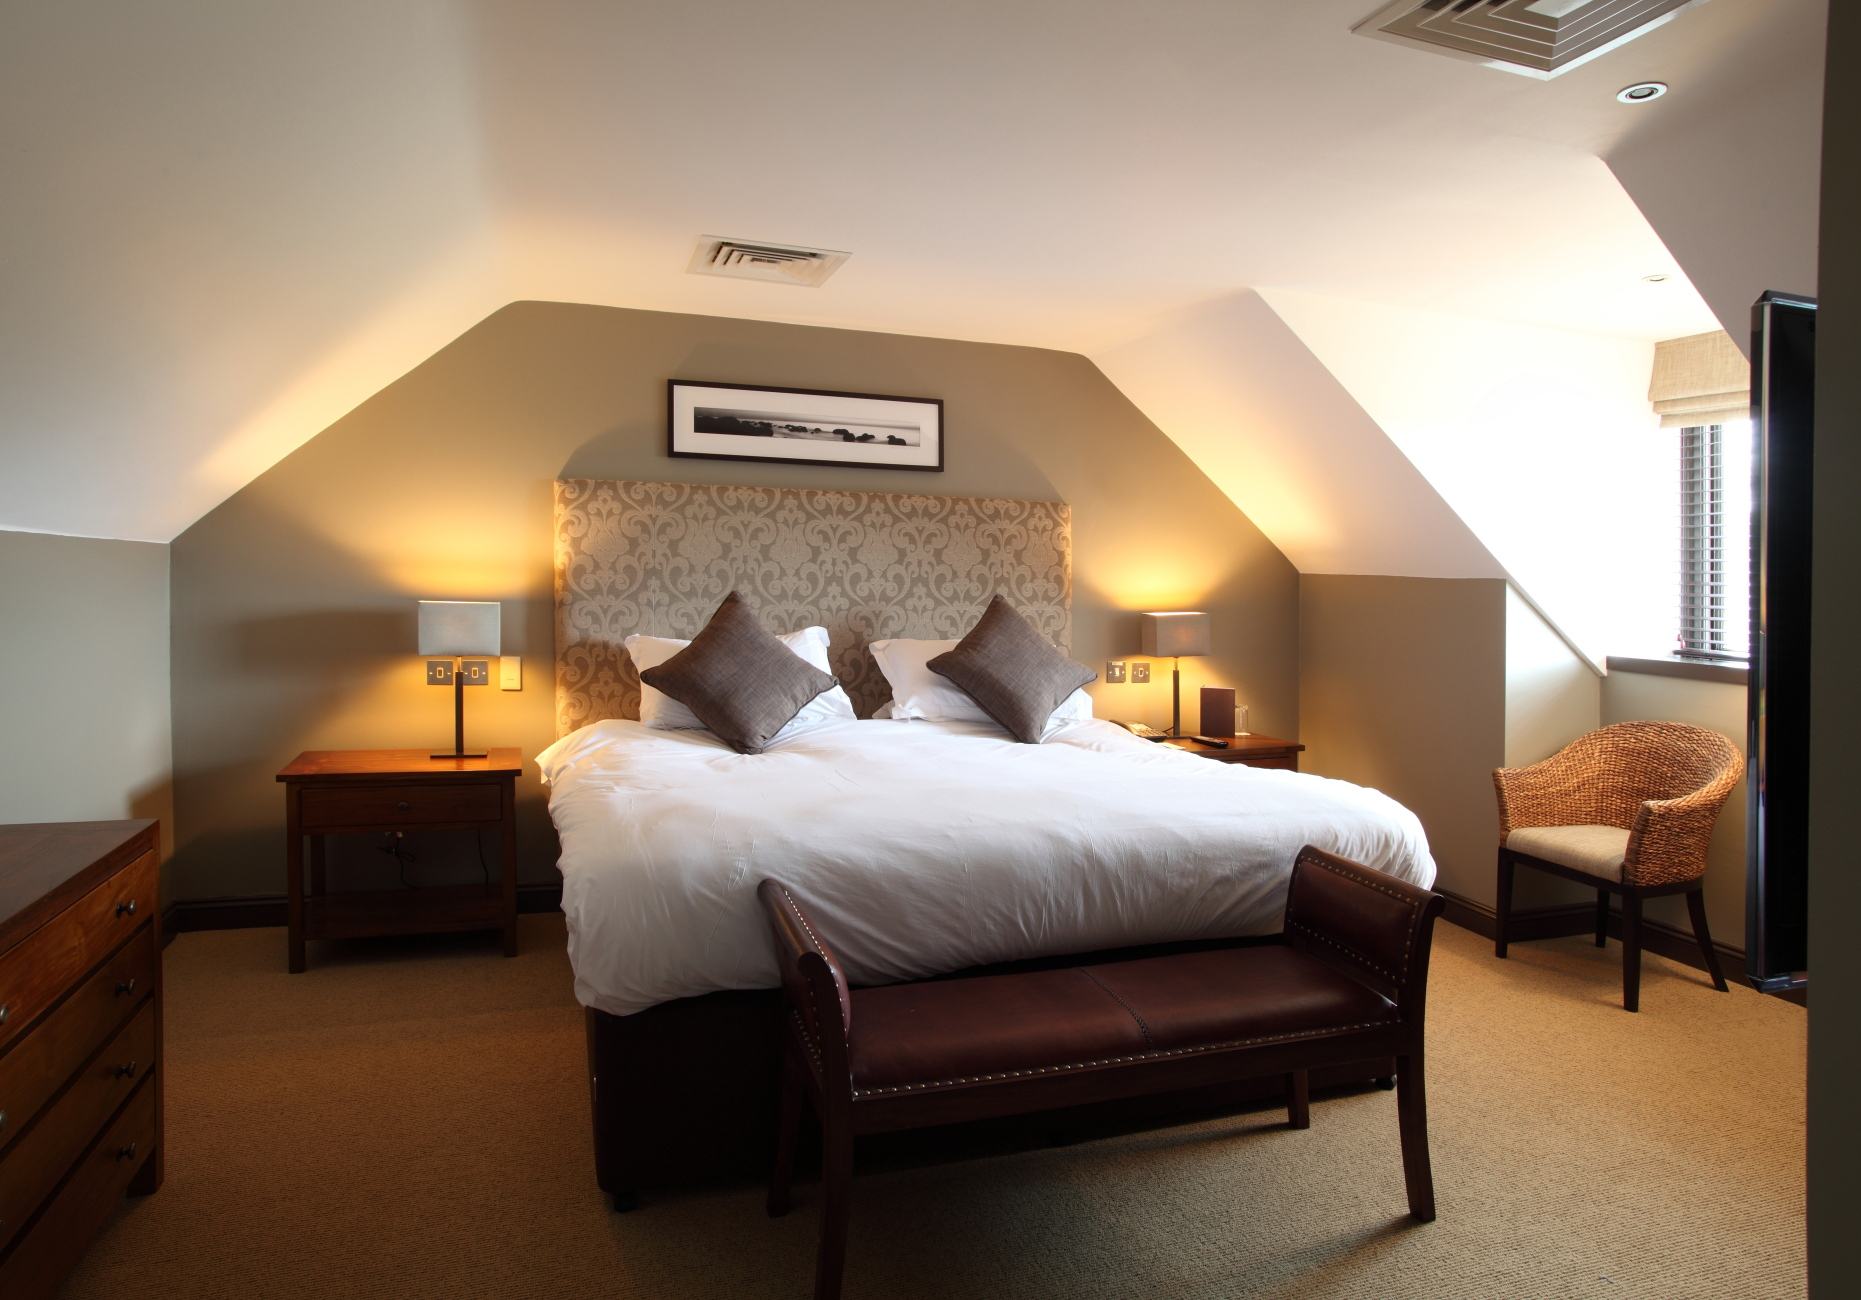 Honingham United Kingdom  city images : Barnham Broom Norfolk Hotel Reviews TripAdvisor